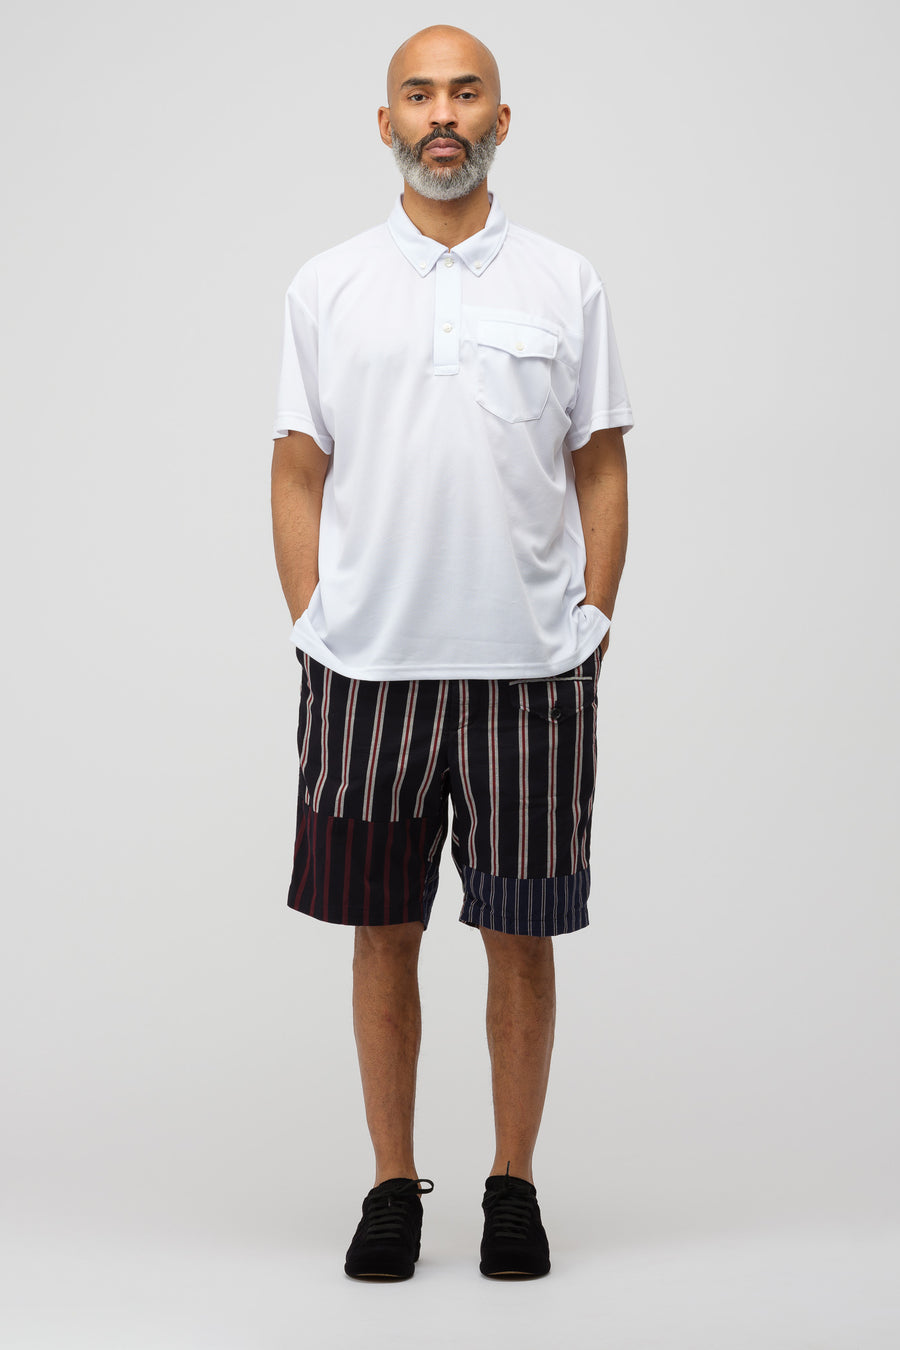 Engineered Garments Mesh Polo in White - Notre